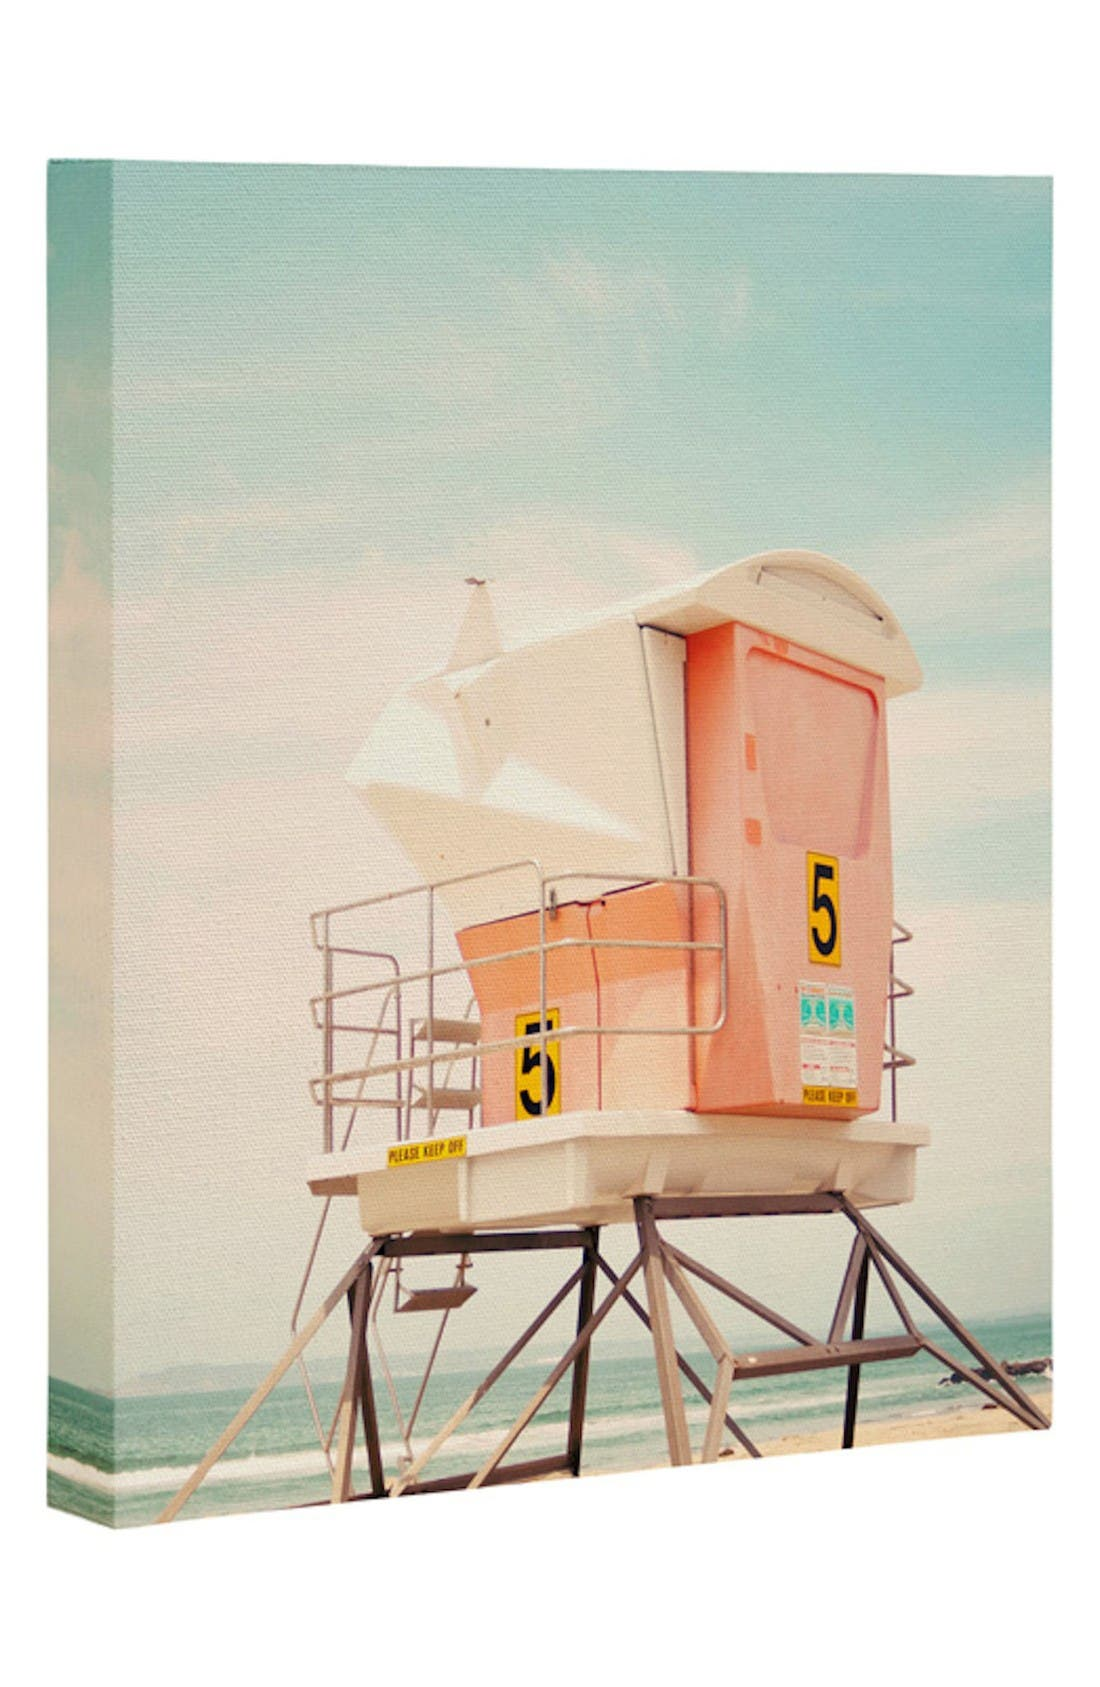 Alternate Image 1 Selected - DENY Designs Beach Tower Wall Art